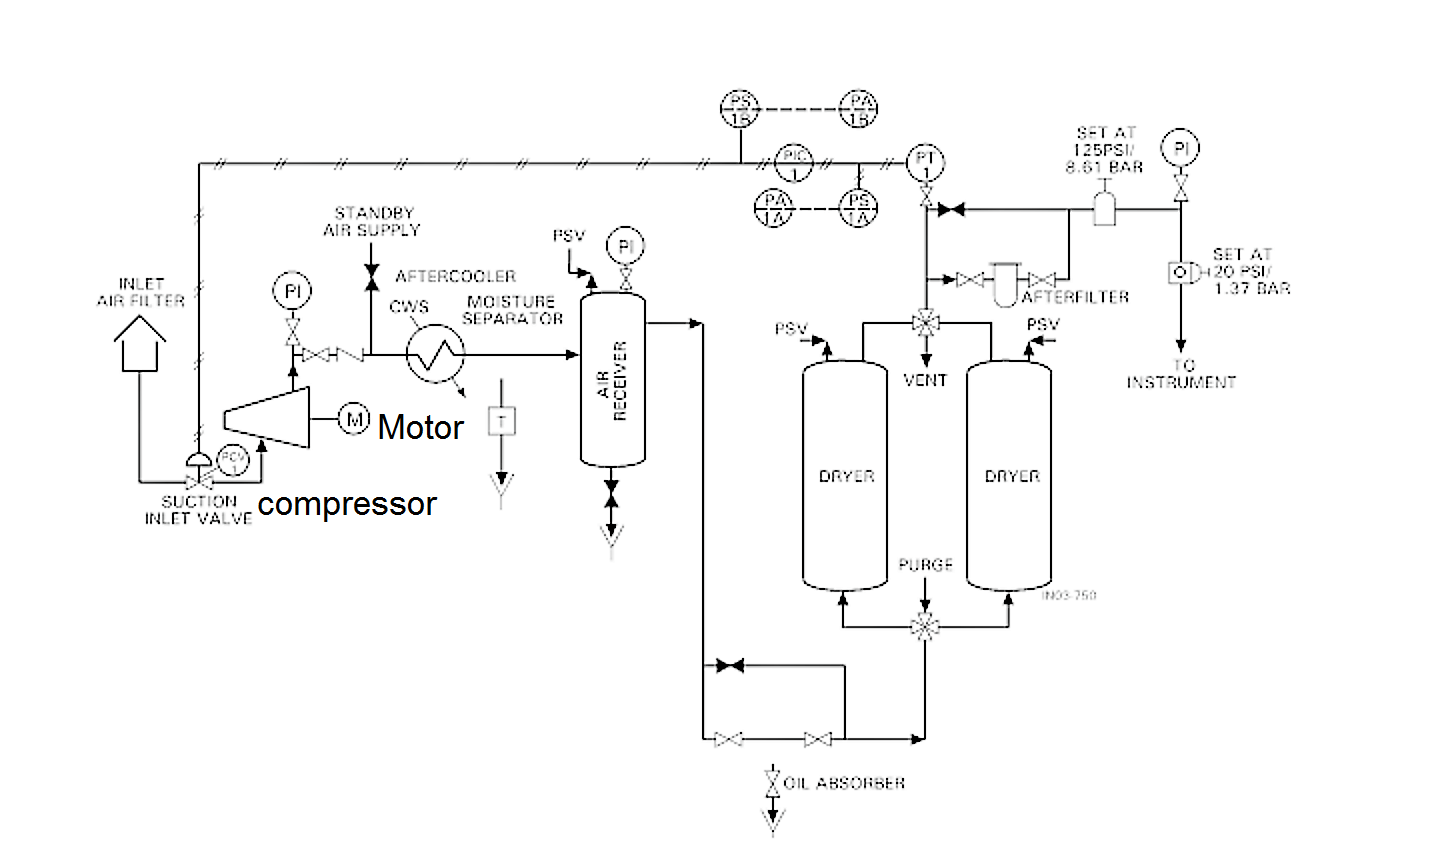 P Amp Id Diagram For Basic Air Supply System And It S